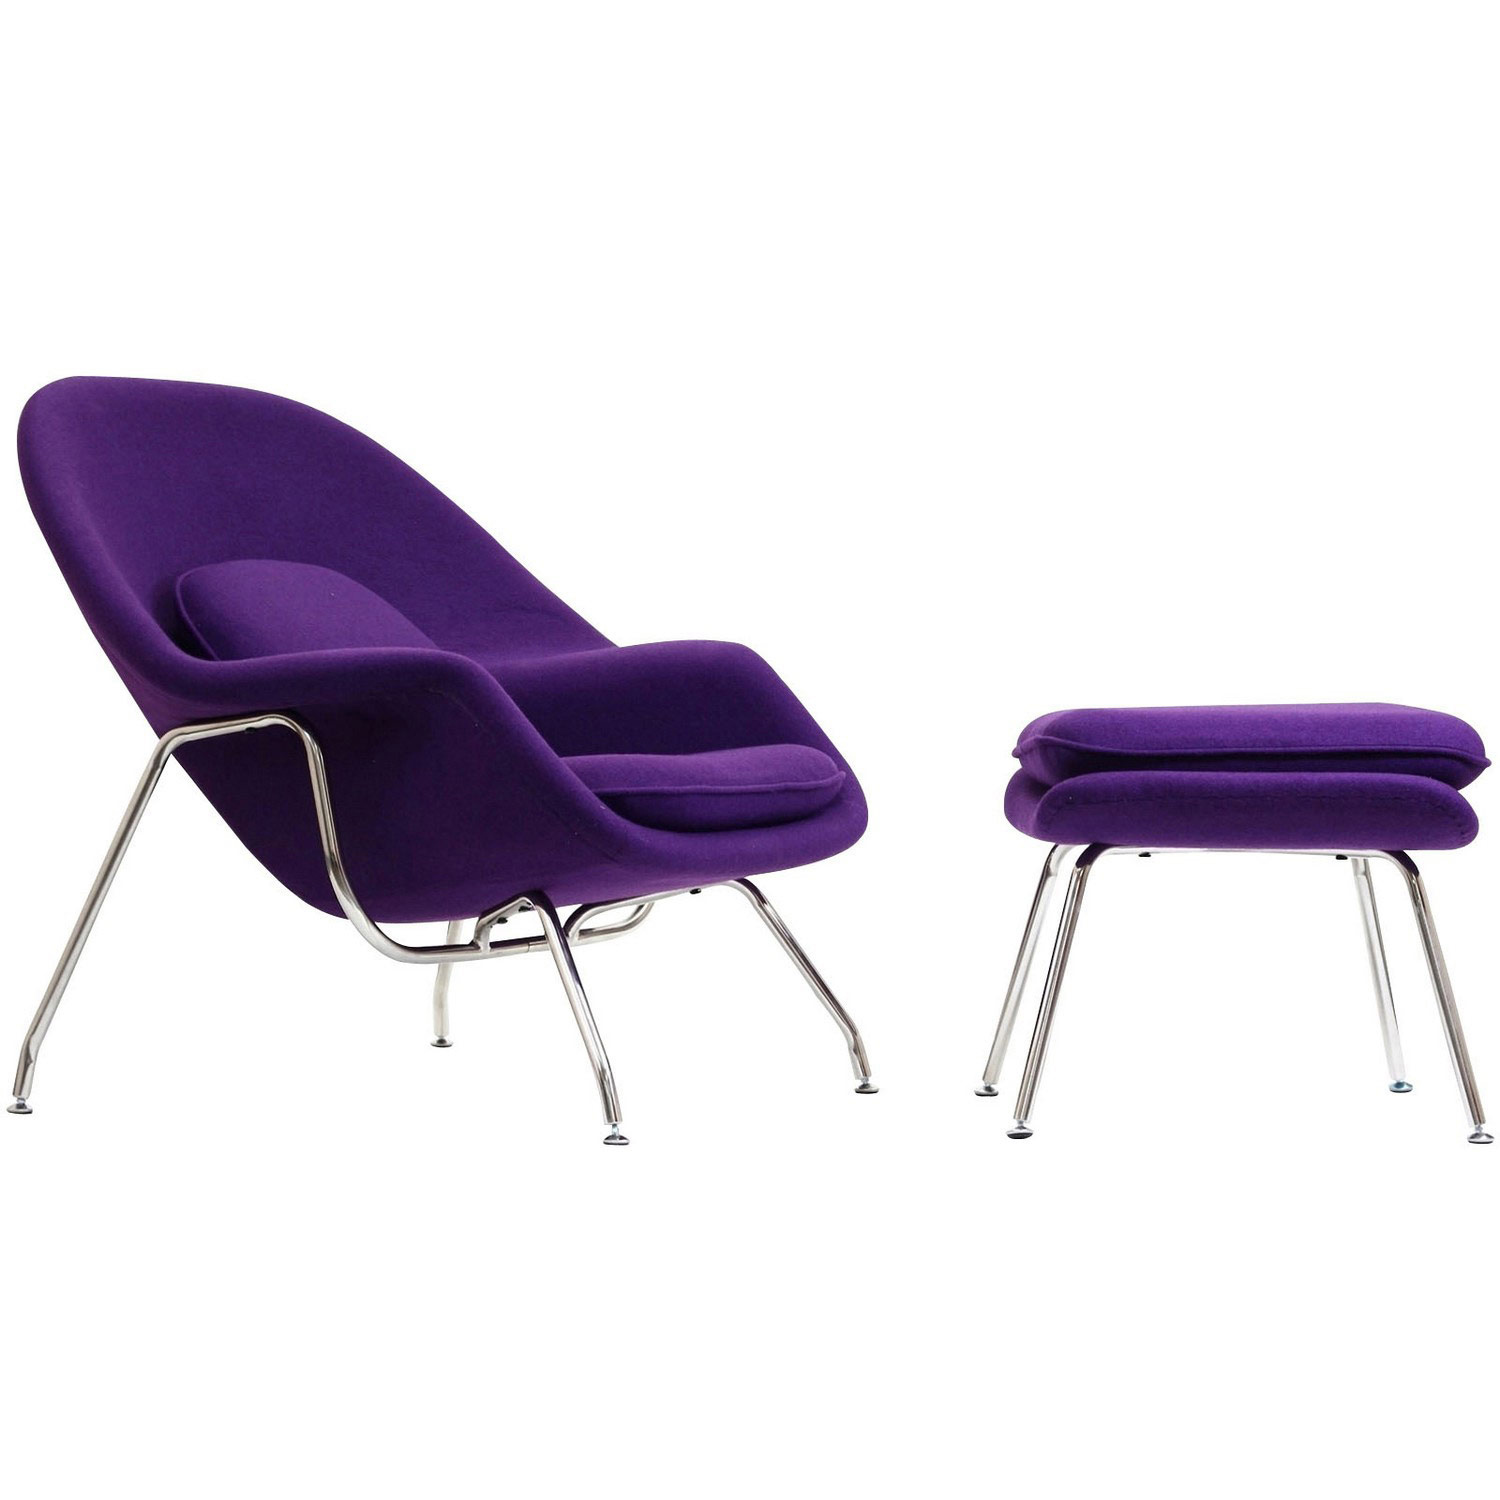 Modway W Fabric Lounge Chair - Purple